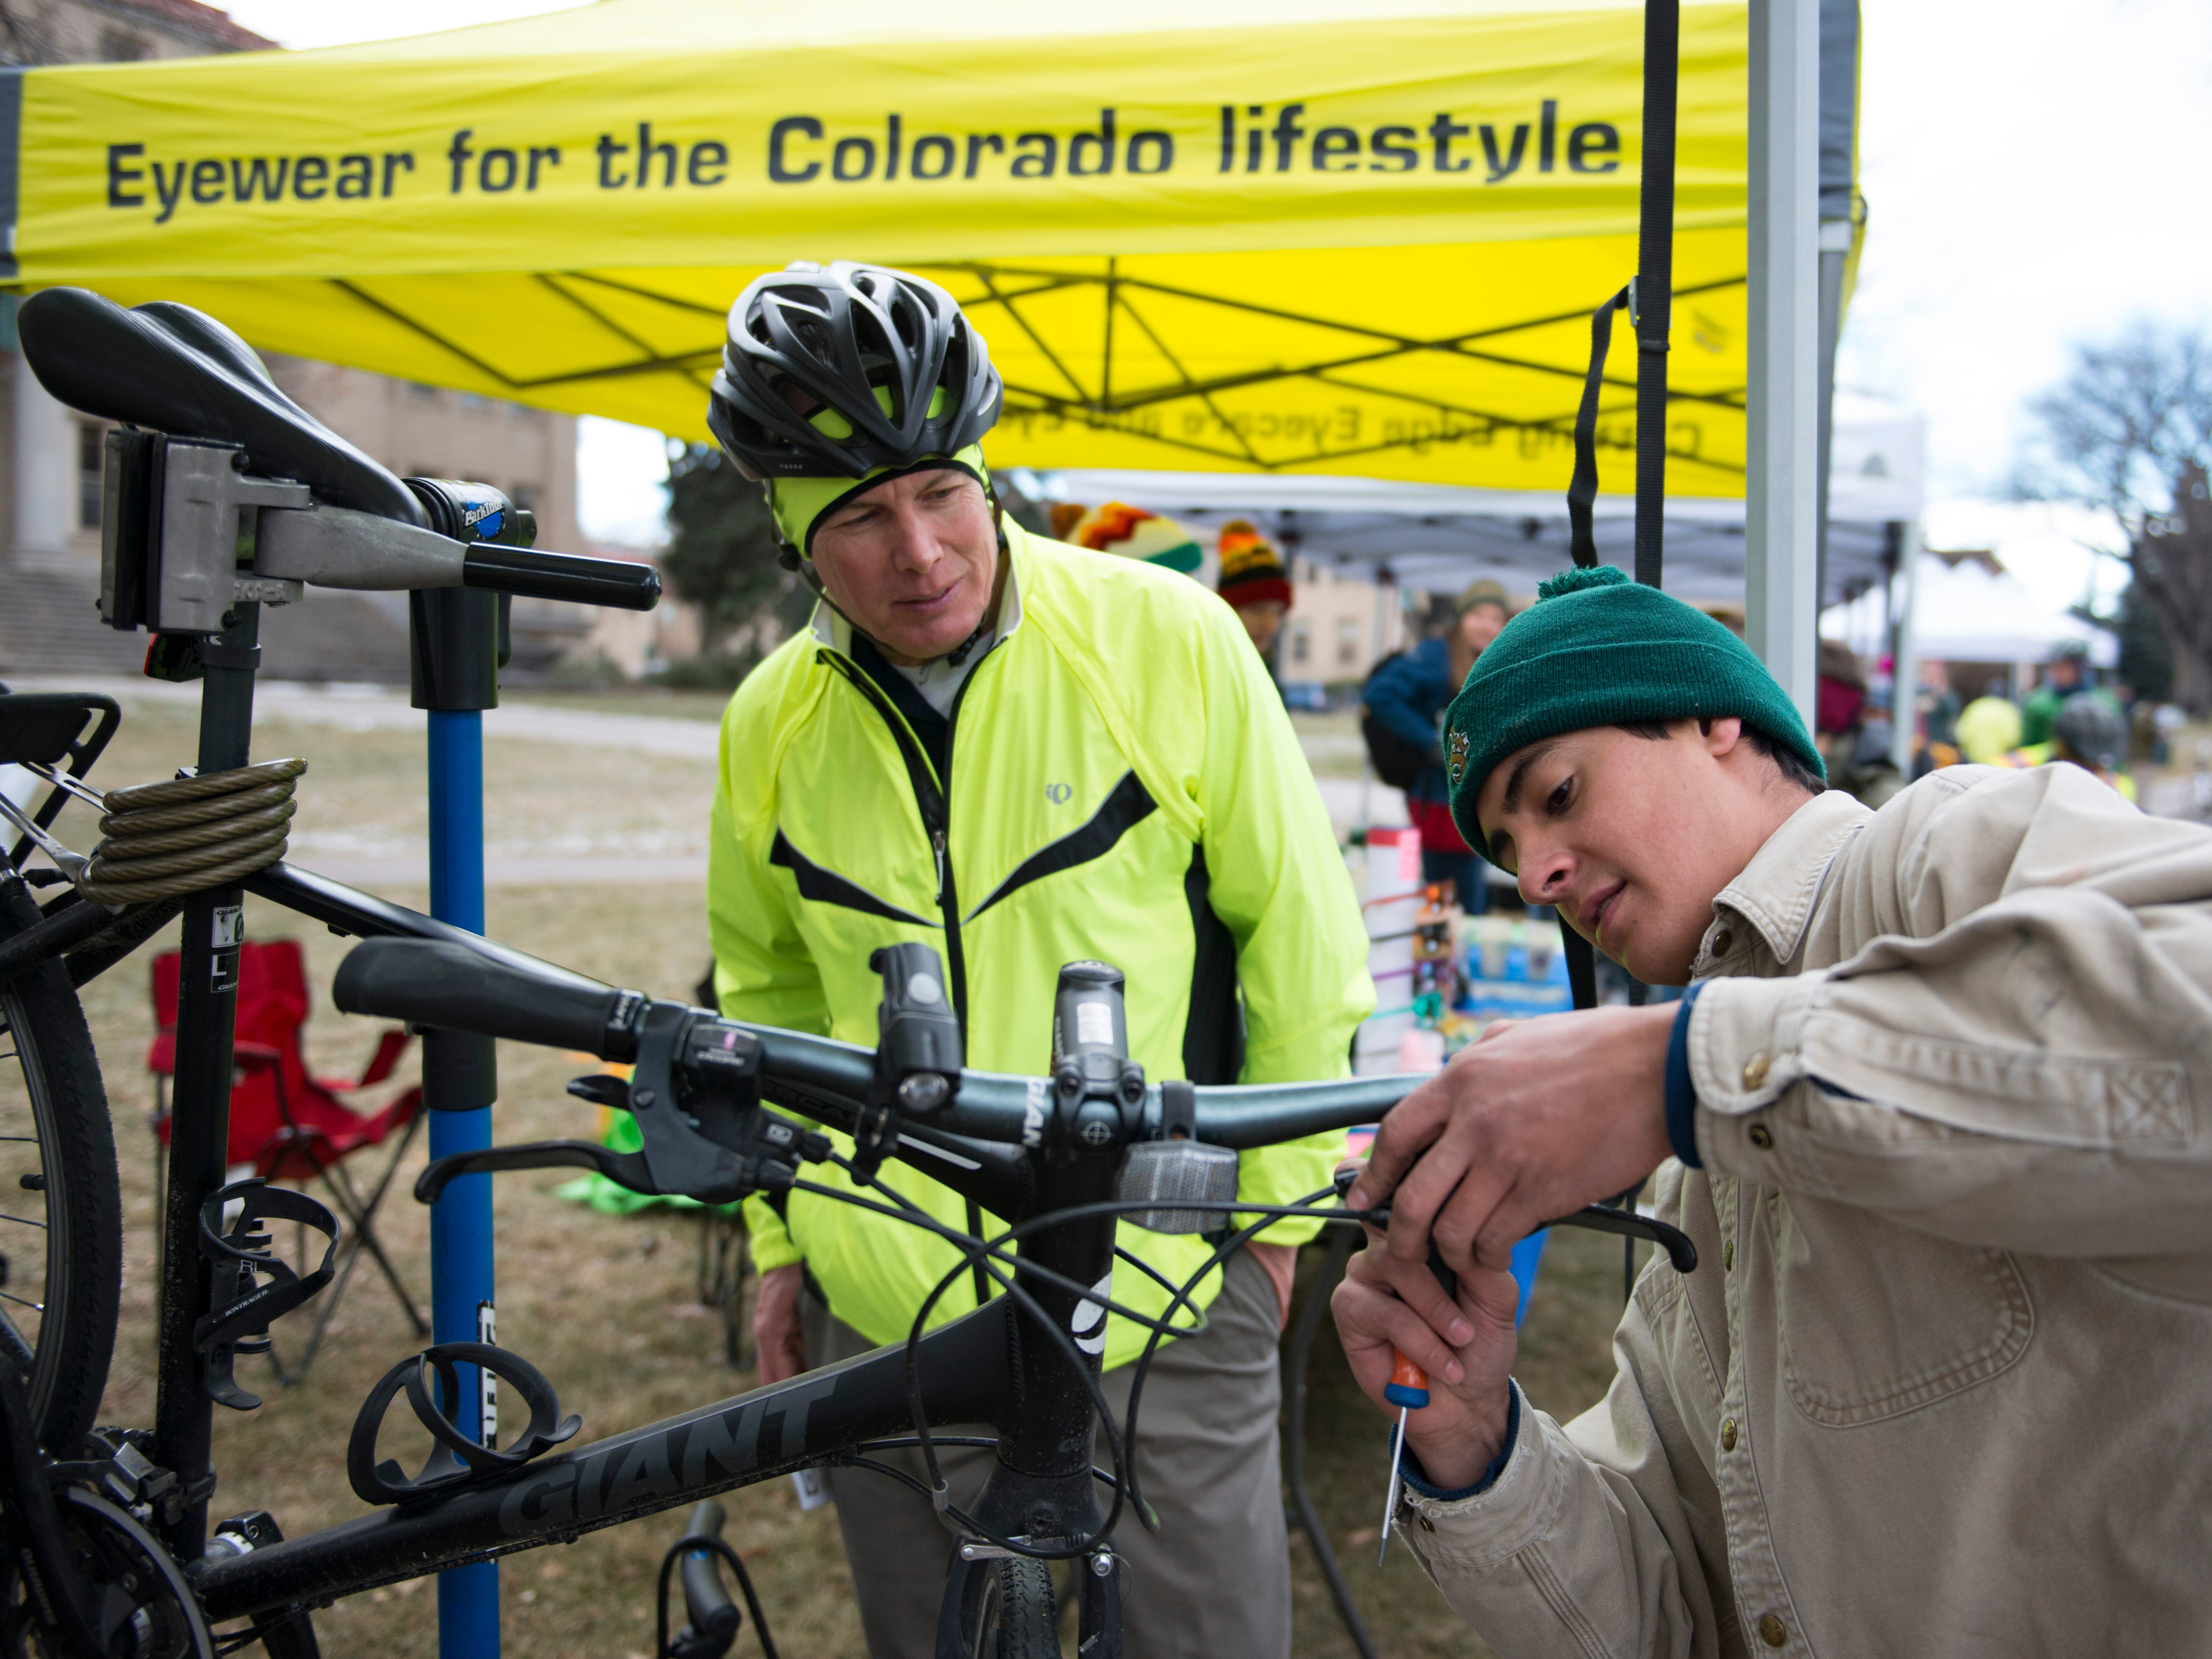 Shawn Baker gets a tune-up on his bicycle from Coleman Centola during Winter Bike to Work Day in the CSU Oval on Wednesday, December 12, 2018. Baker said he marks his calendar at work for every day he commutes by bicycle. Today was day 146 for the year.